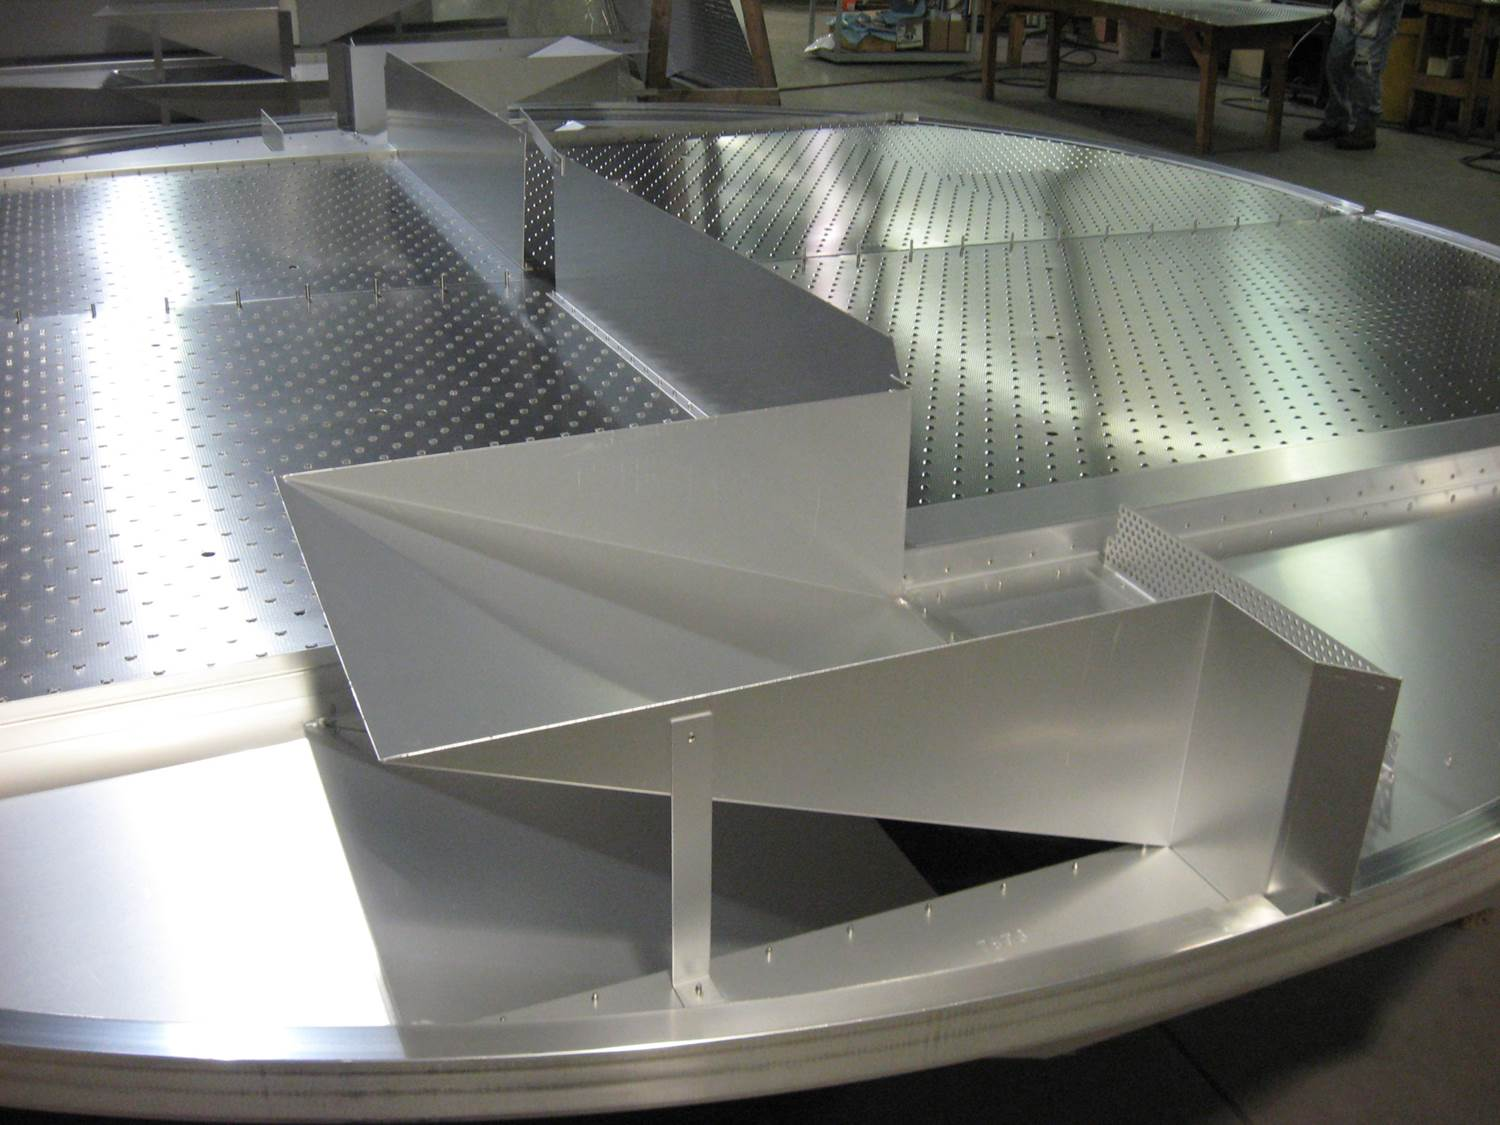 Riveted Aluminum Tray Close Uo